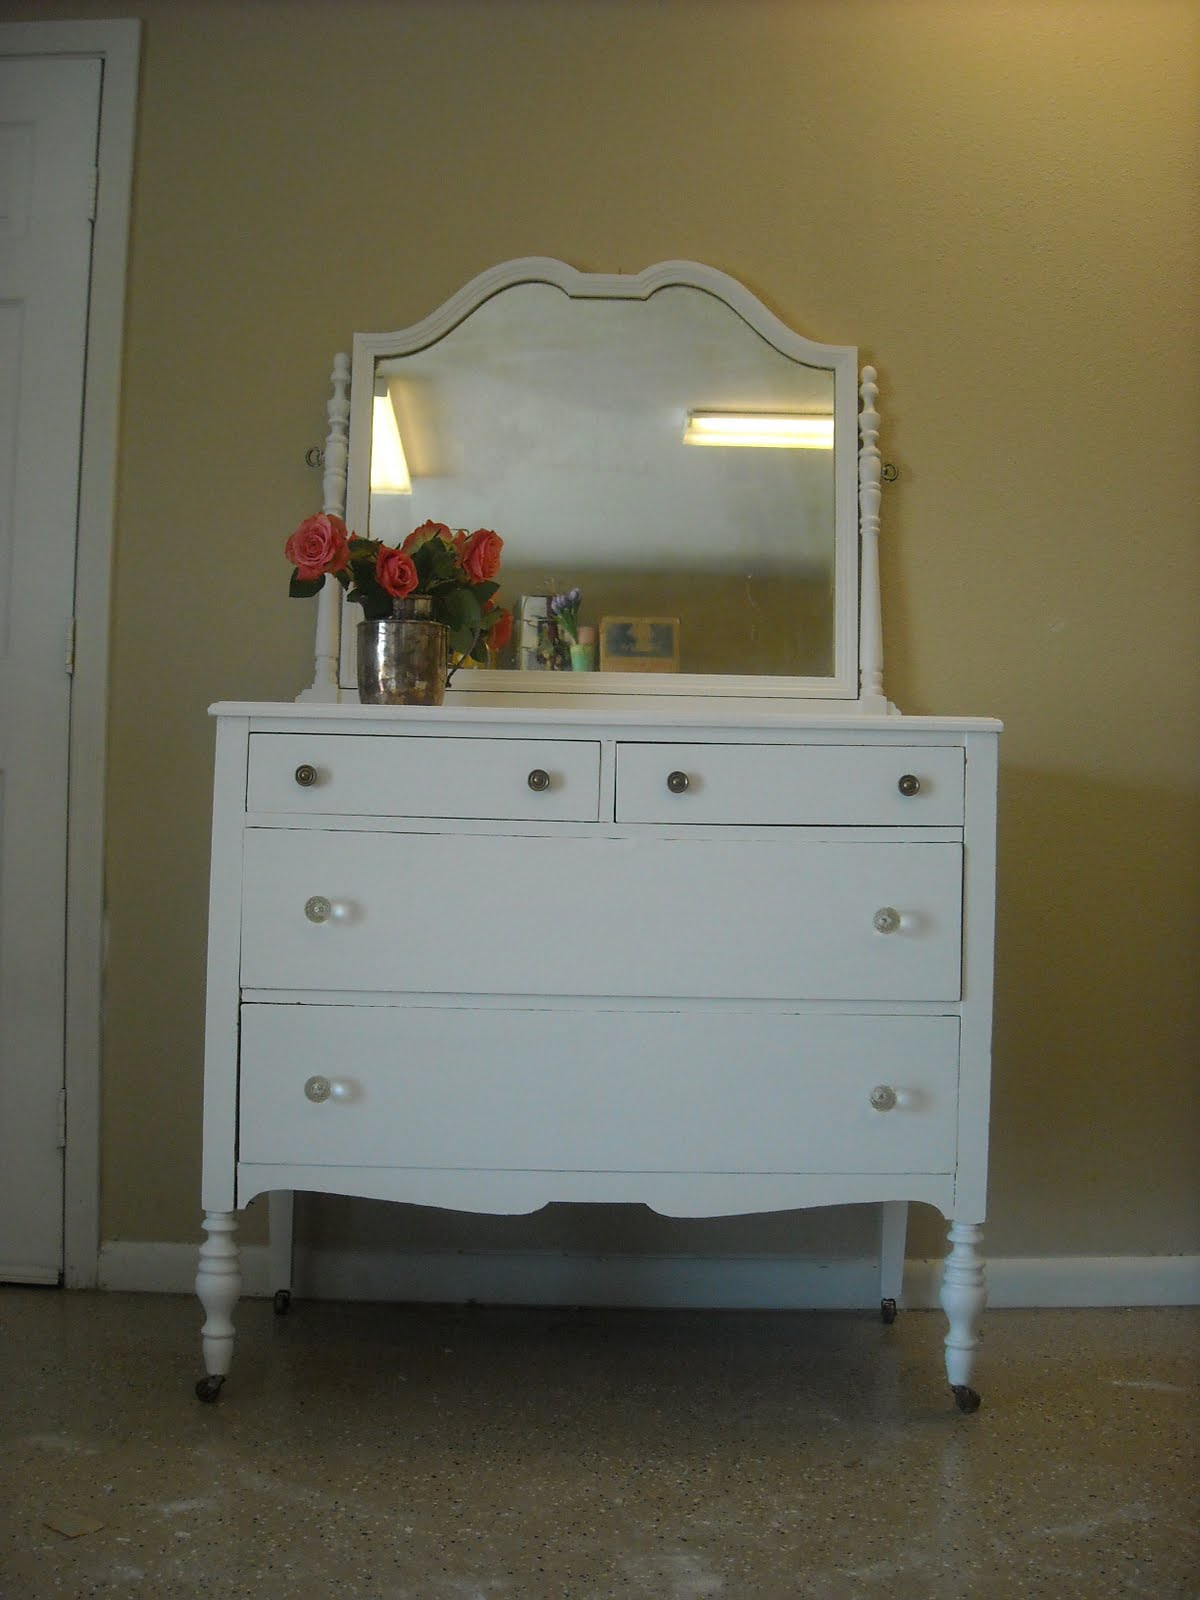 Timelessshabbycreations Shabby Chic Antique White Dresser With Mirror On Casters Sold